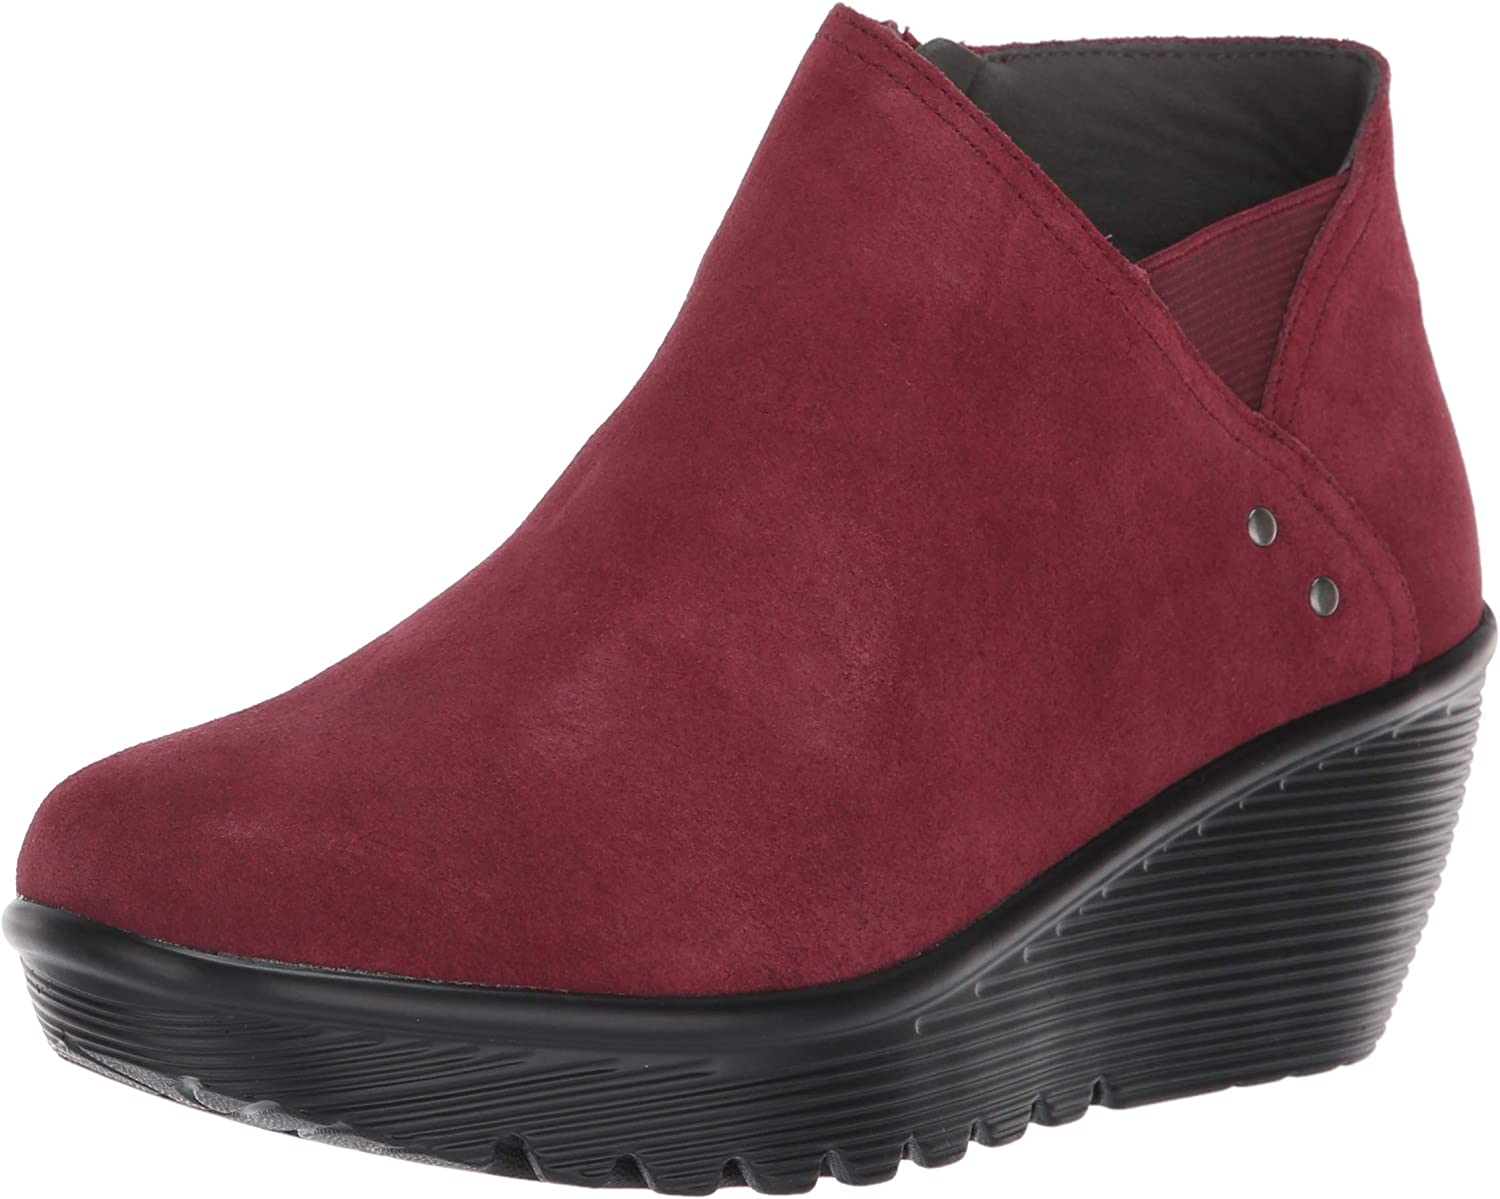 Skechers Women's Parallel-Ditto-Asymmetrical Bootie Award-winning store Limited price Collar Suede